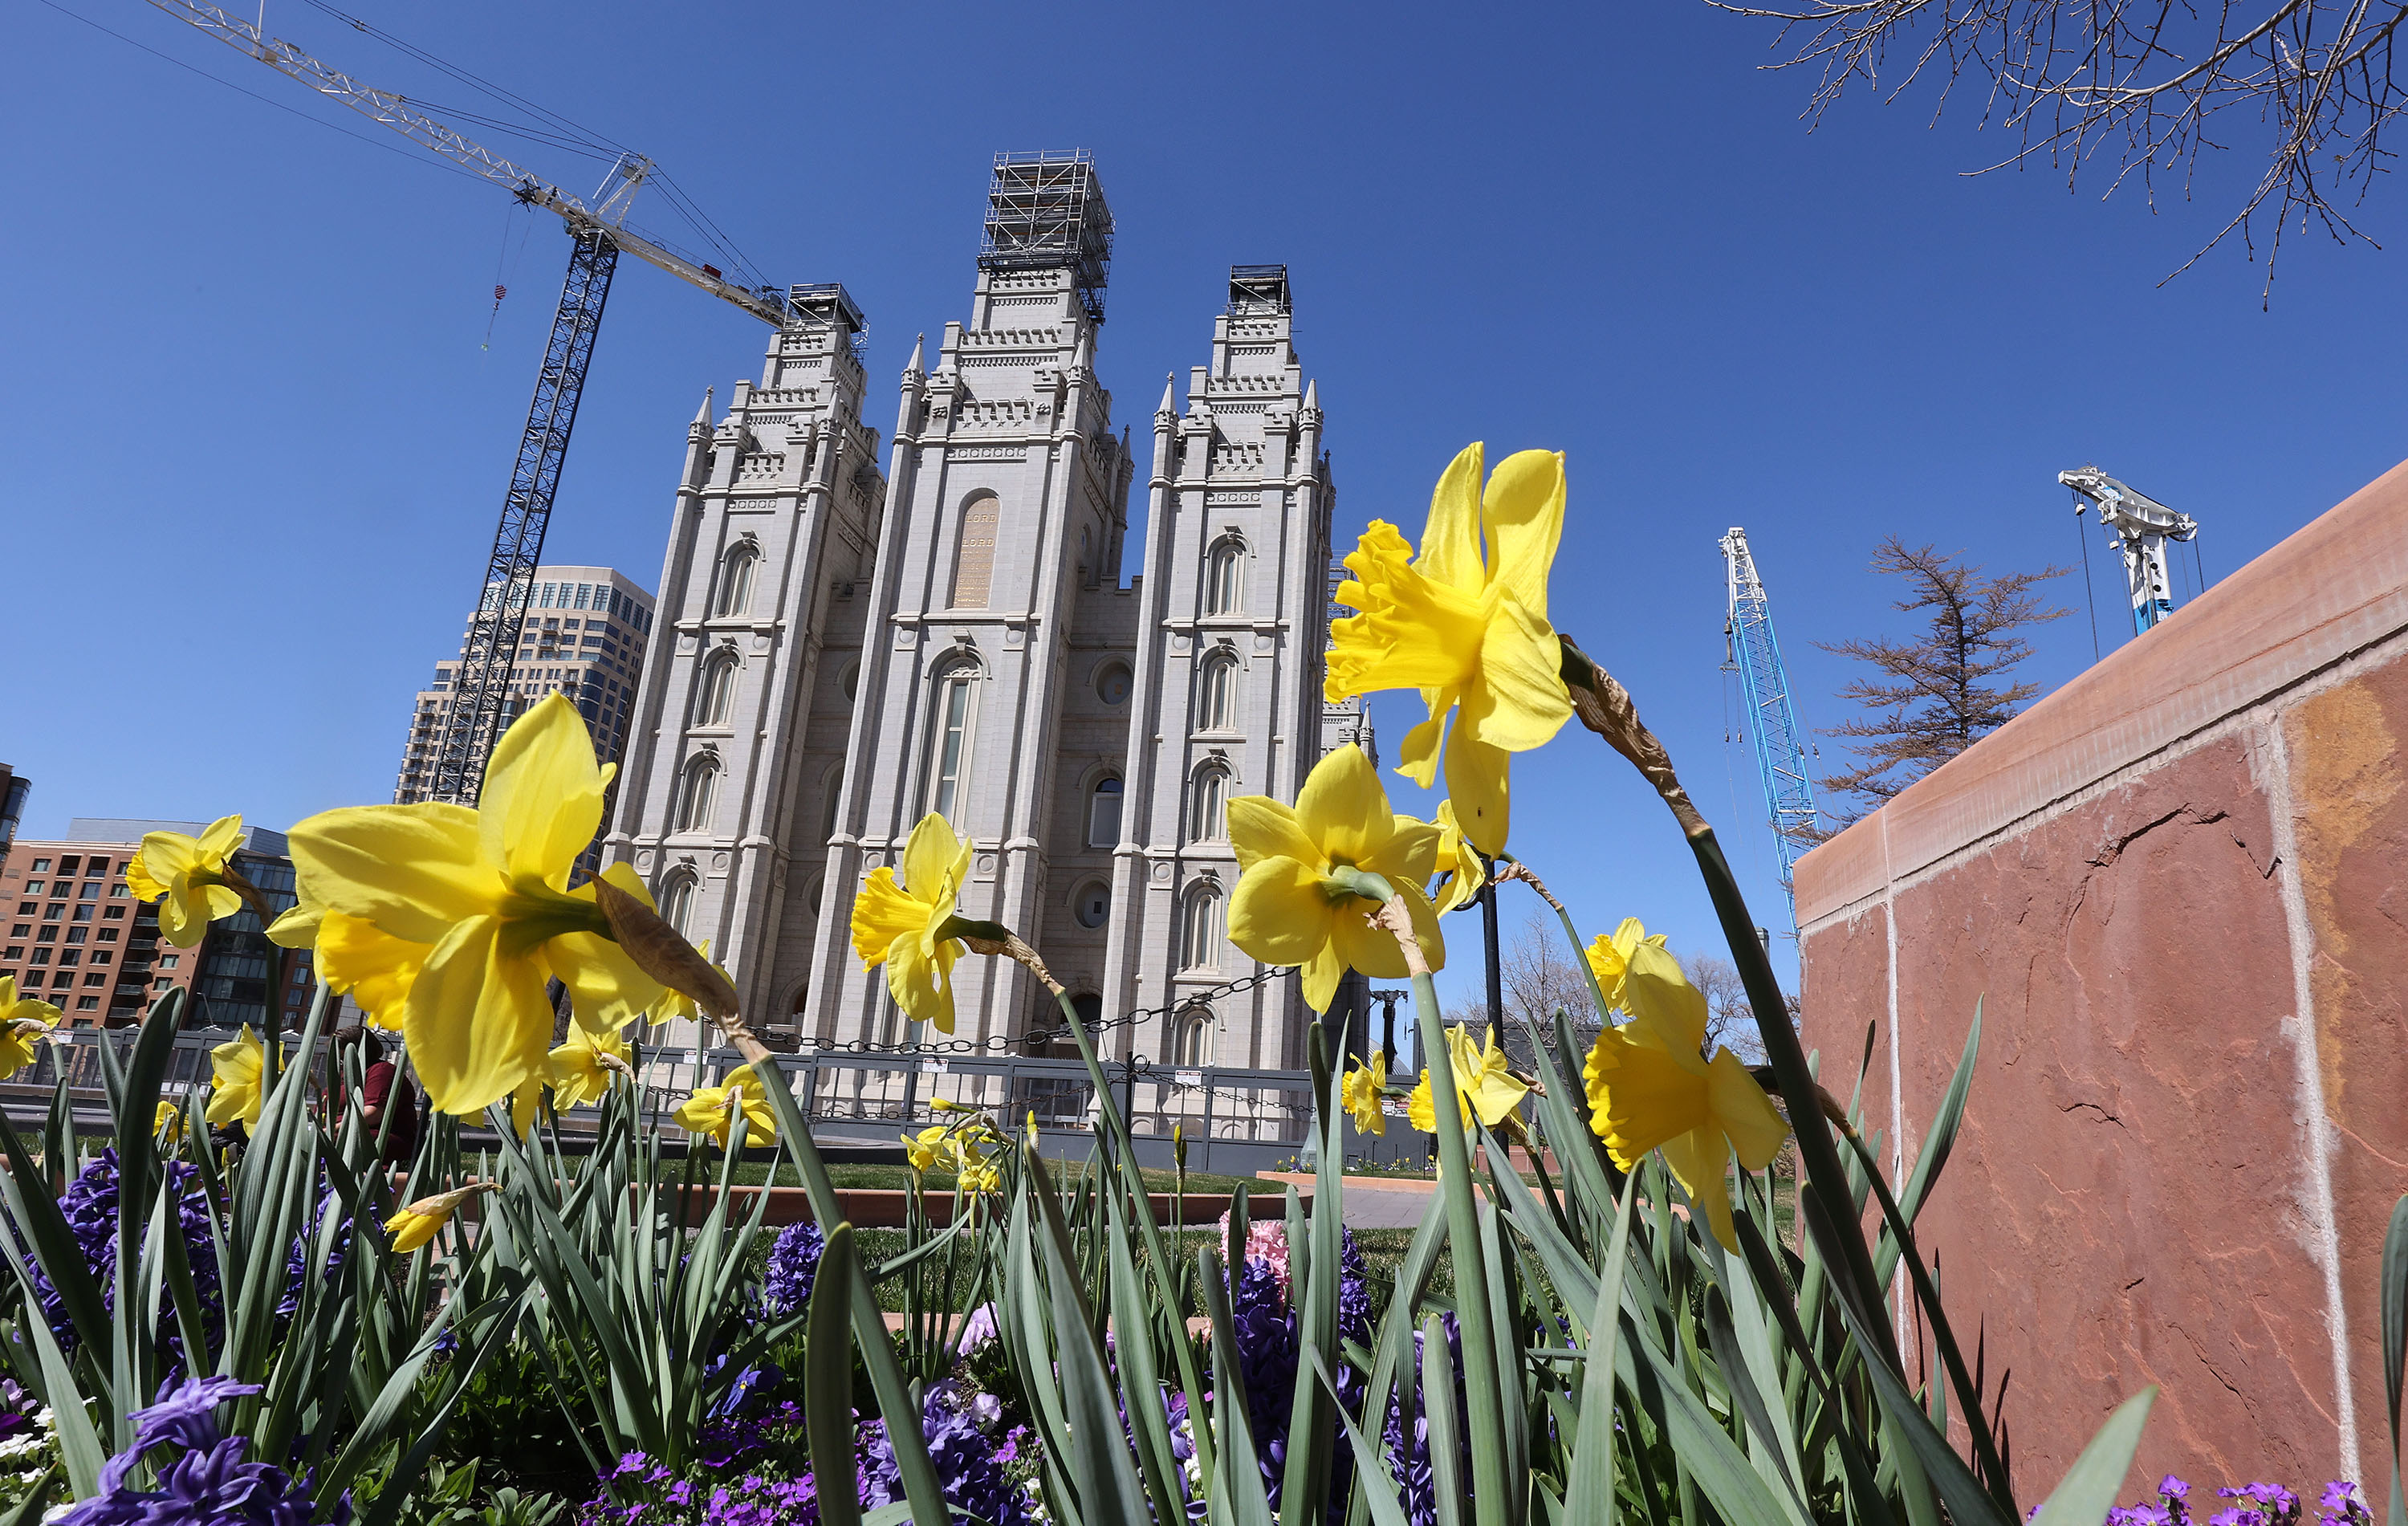 Flowers bloom near the Salt Lake Temple, which is currently under renovation, during the 191st Annual General Conference of The Church of Jesus Christ of Latter-day Saints in Salt Lake City on Saturday, April 3, 2021.